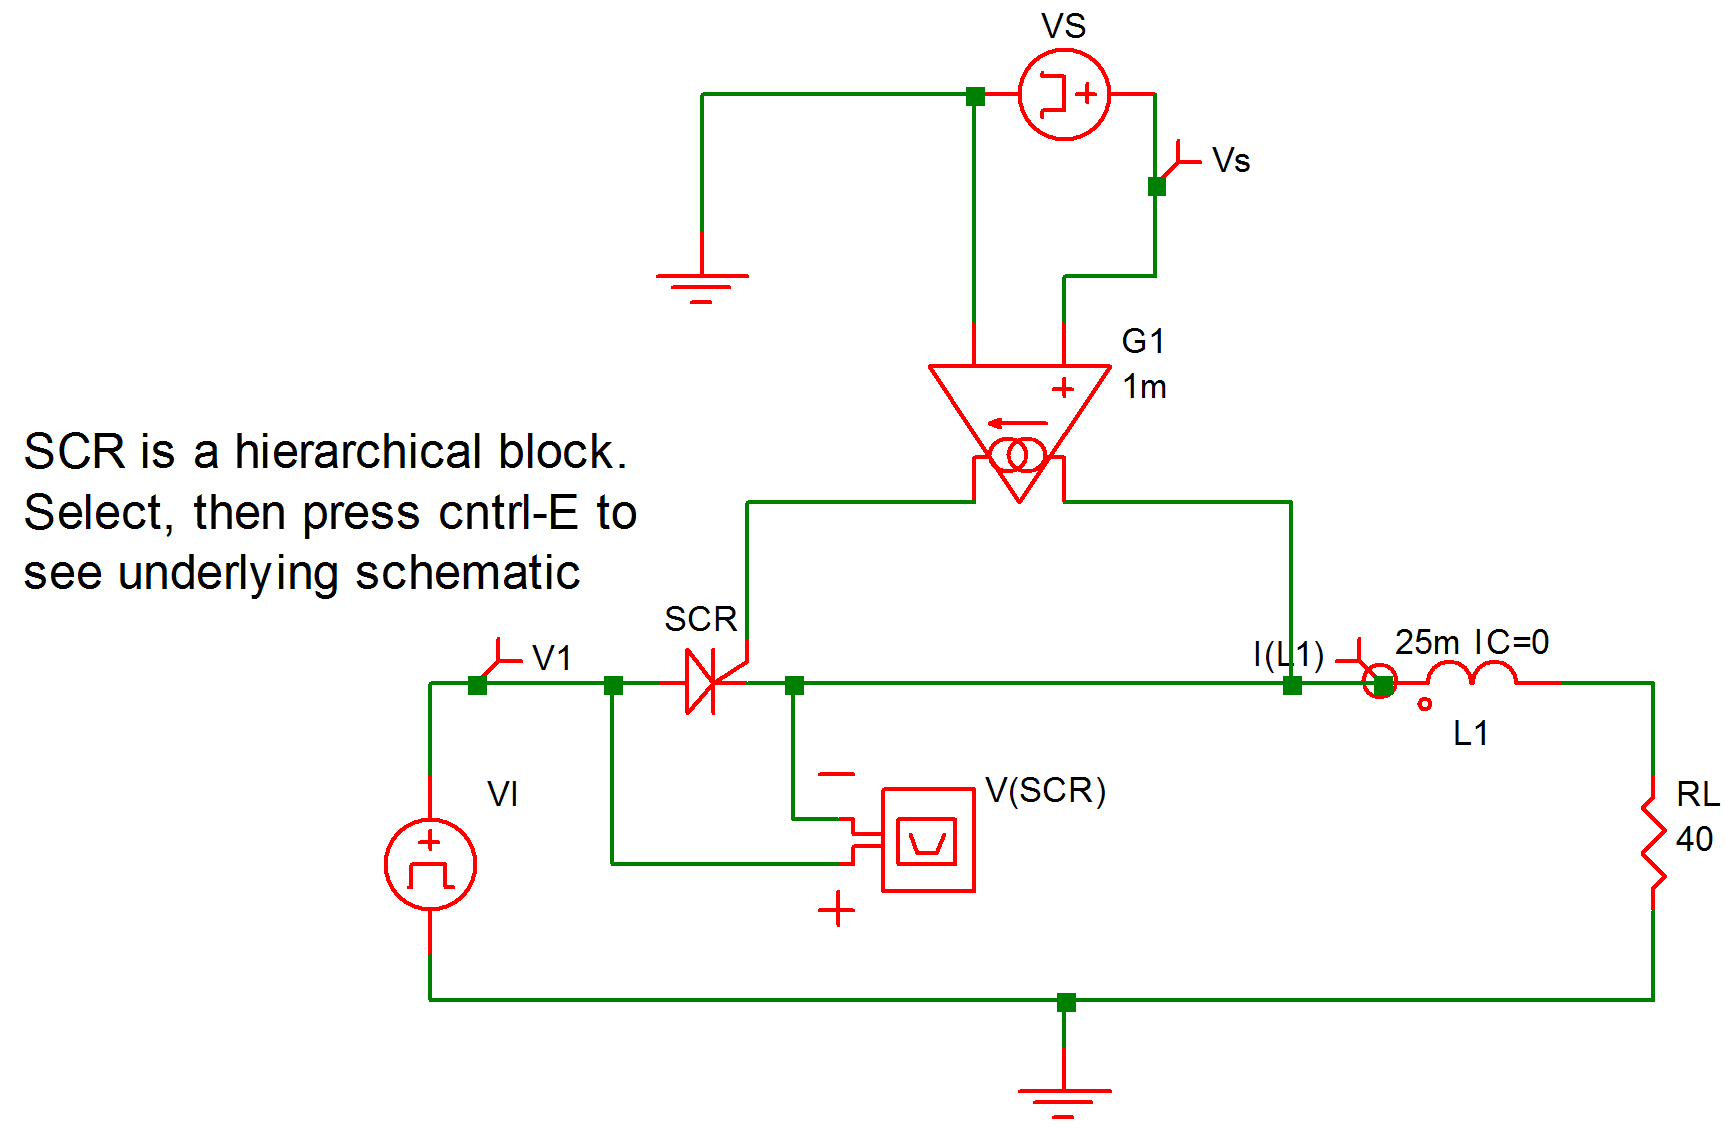 Simplis Reference Example 7 Scr With Rl Load How To Make Simple Circuits 920 A Silicon Controlled Rectifier Series R L